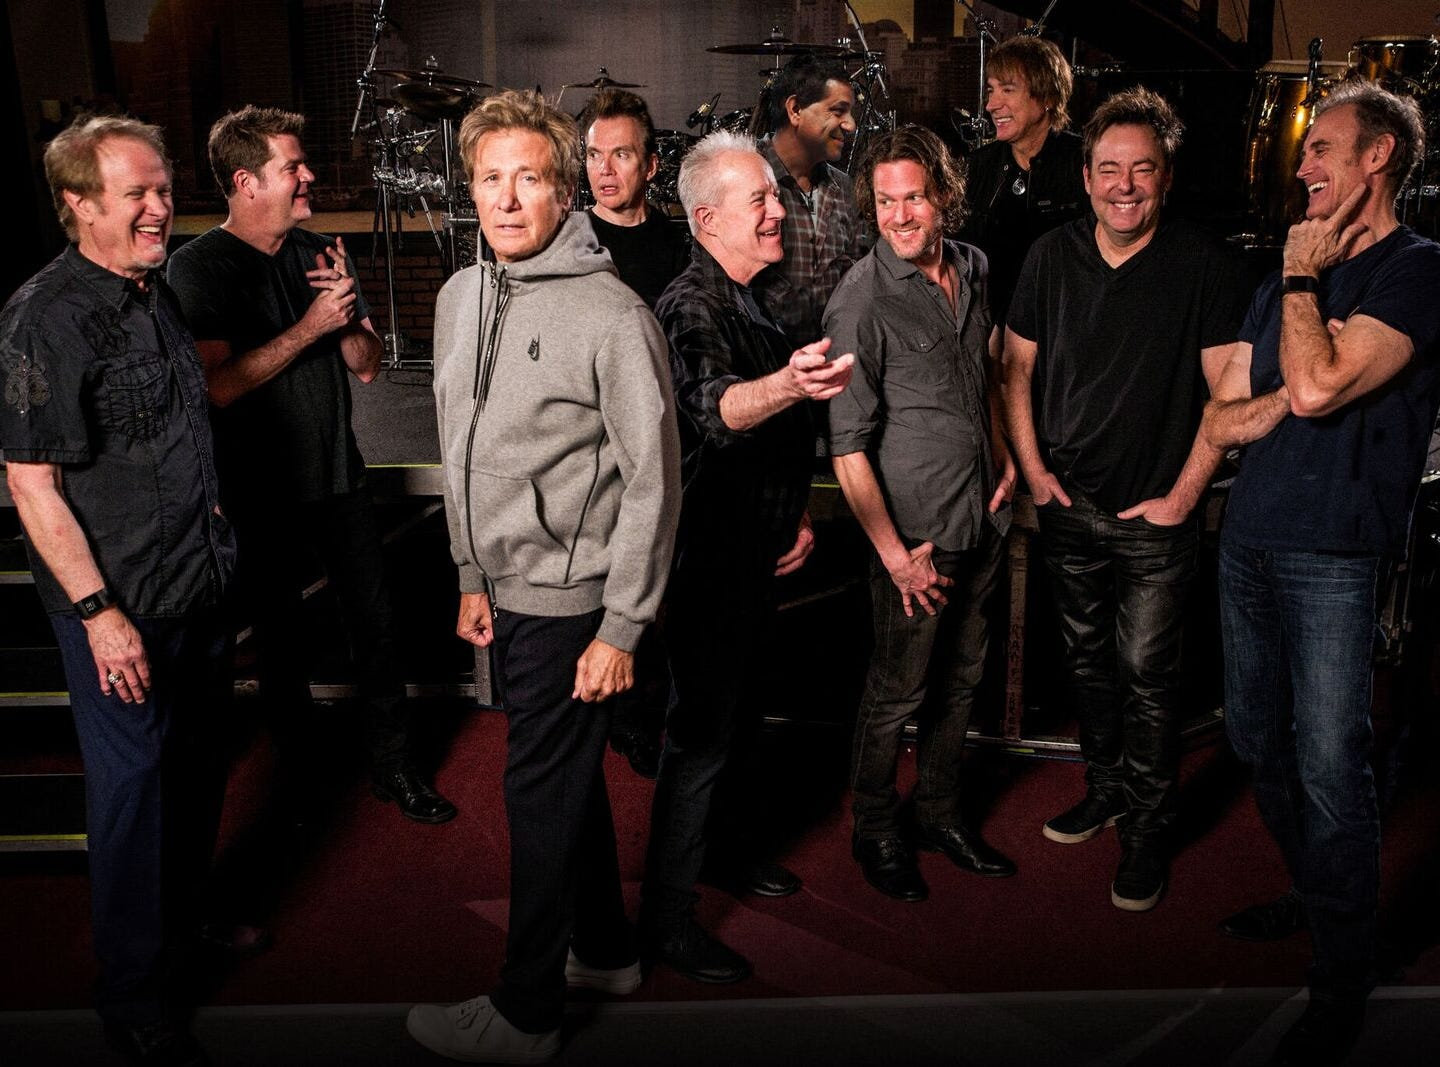 Rock band Chicago returns to The Venetian Theater in Las Vegas for an 8 show engagement on Feb. 8.